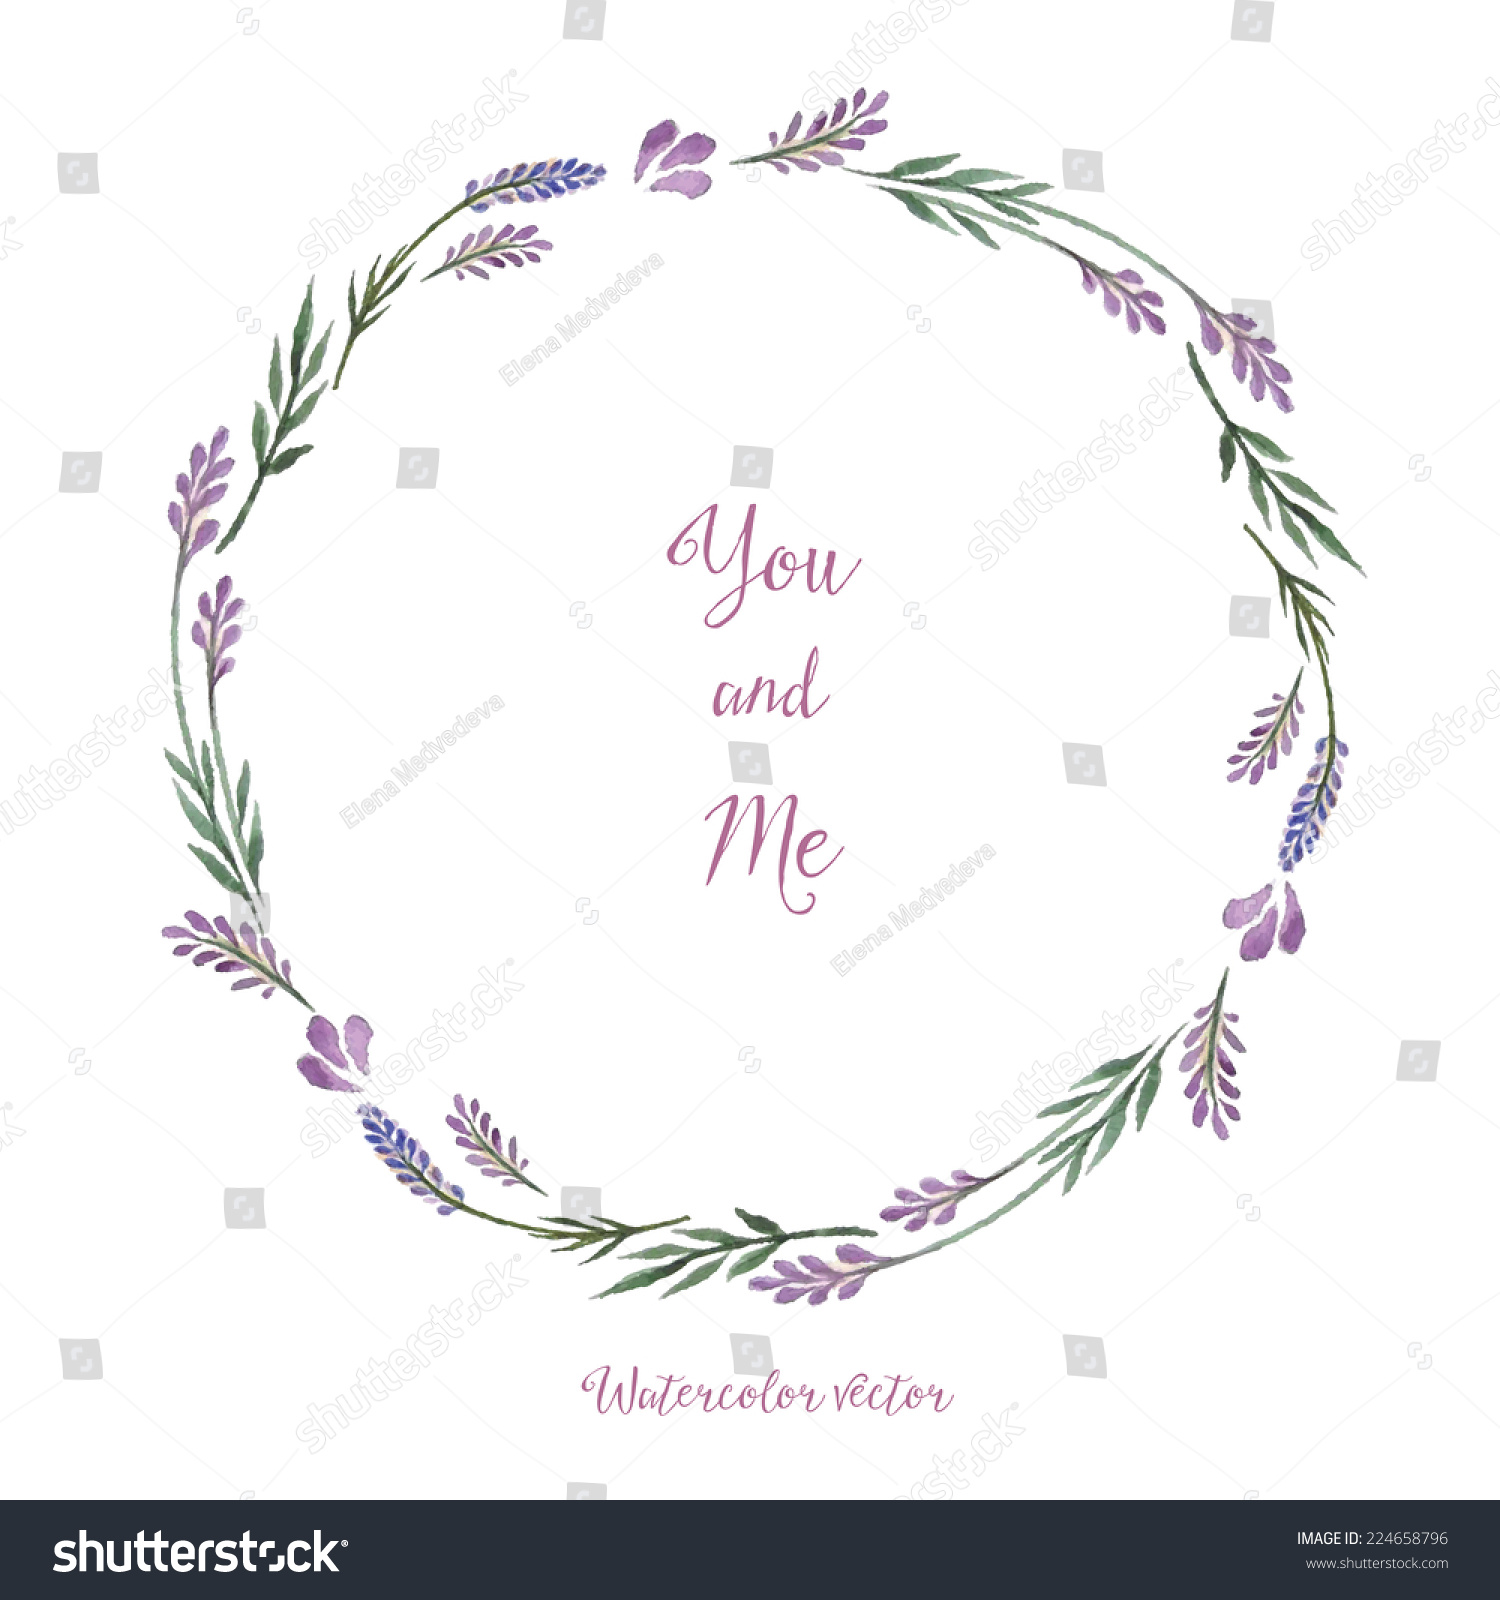 Round frame with decorative branch vector illustration stock - Watercolor Decorative Elements Round Frame Of Lavender Vector Illustration Place For Your